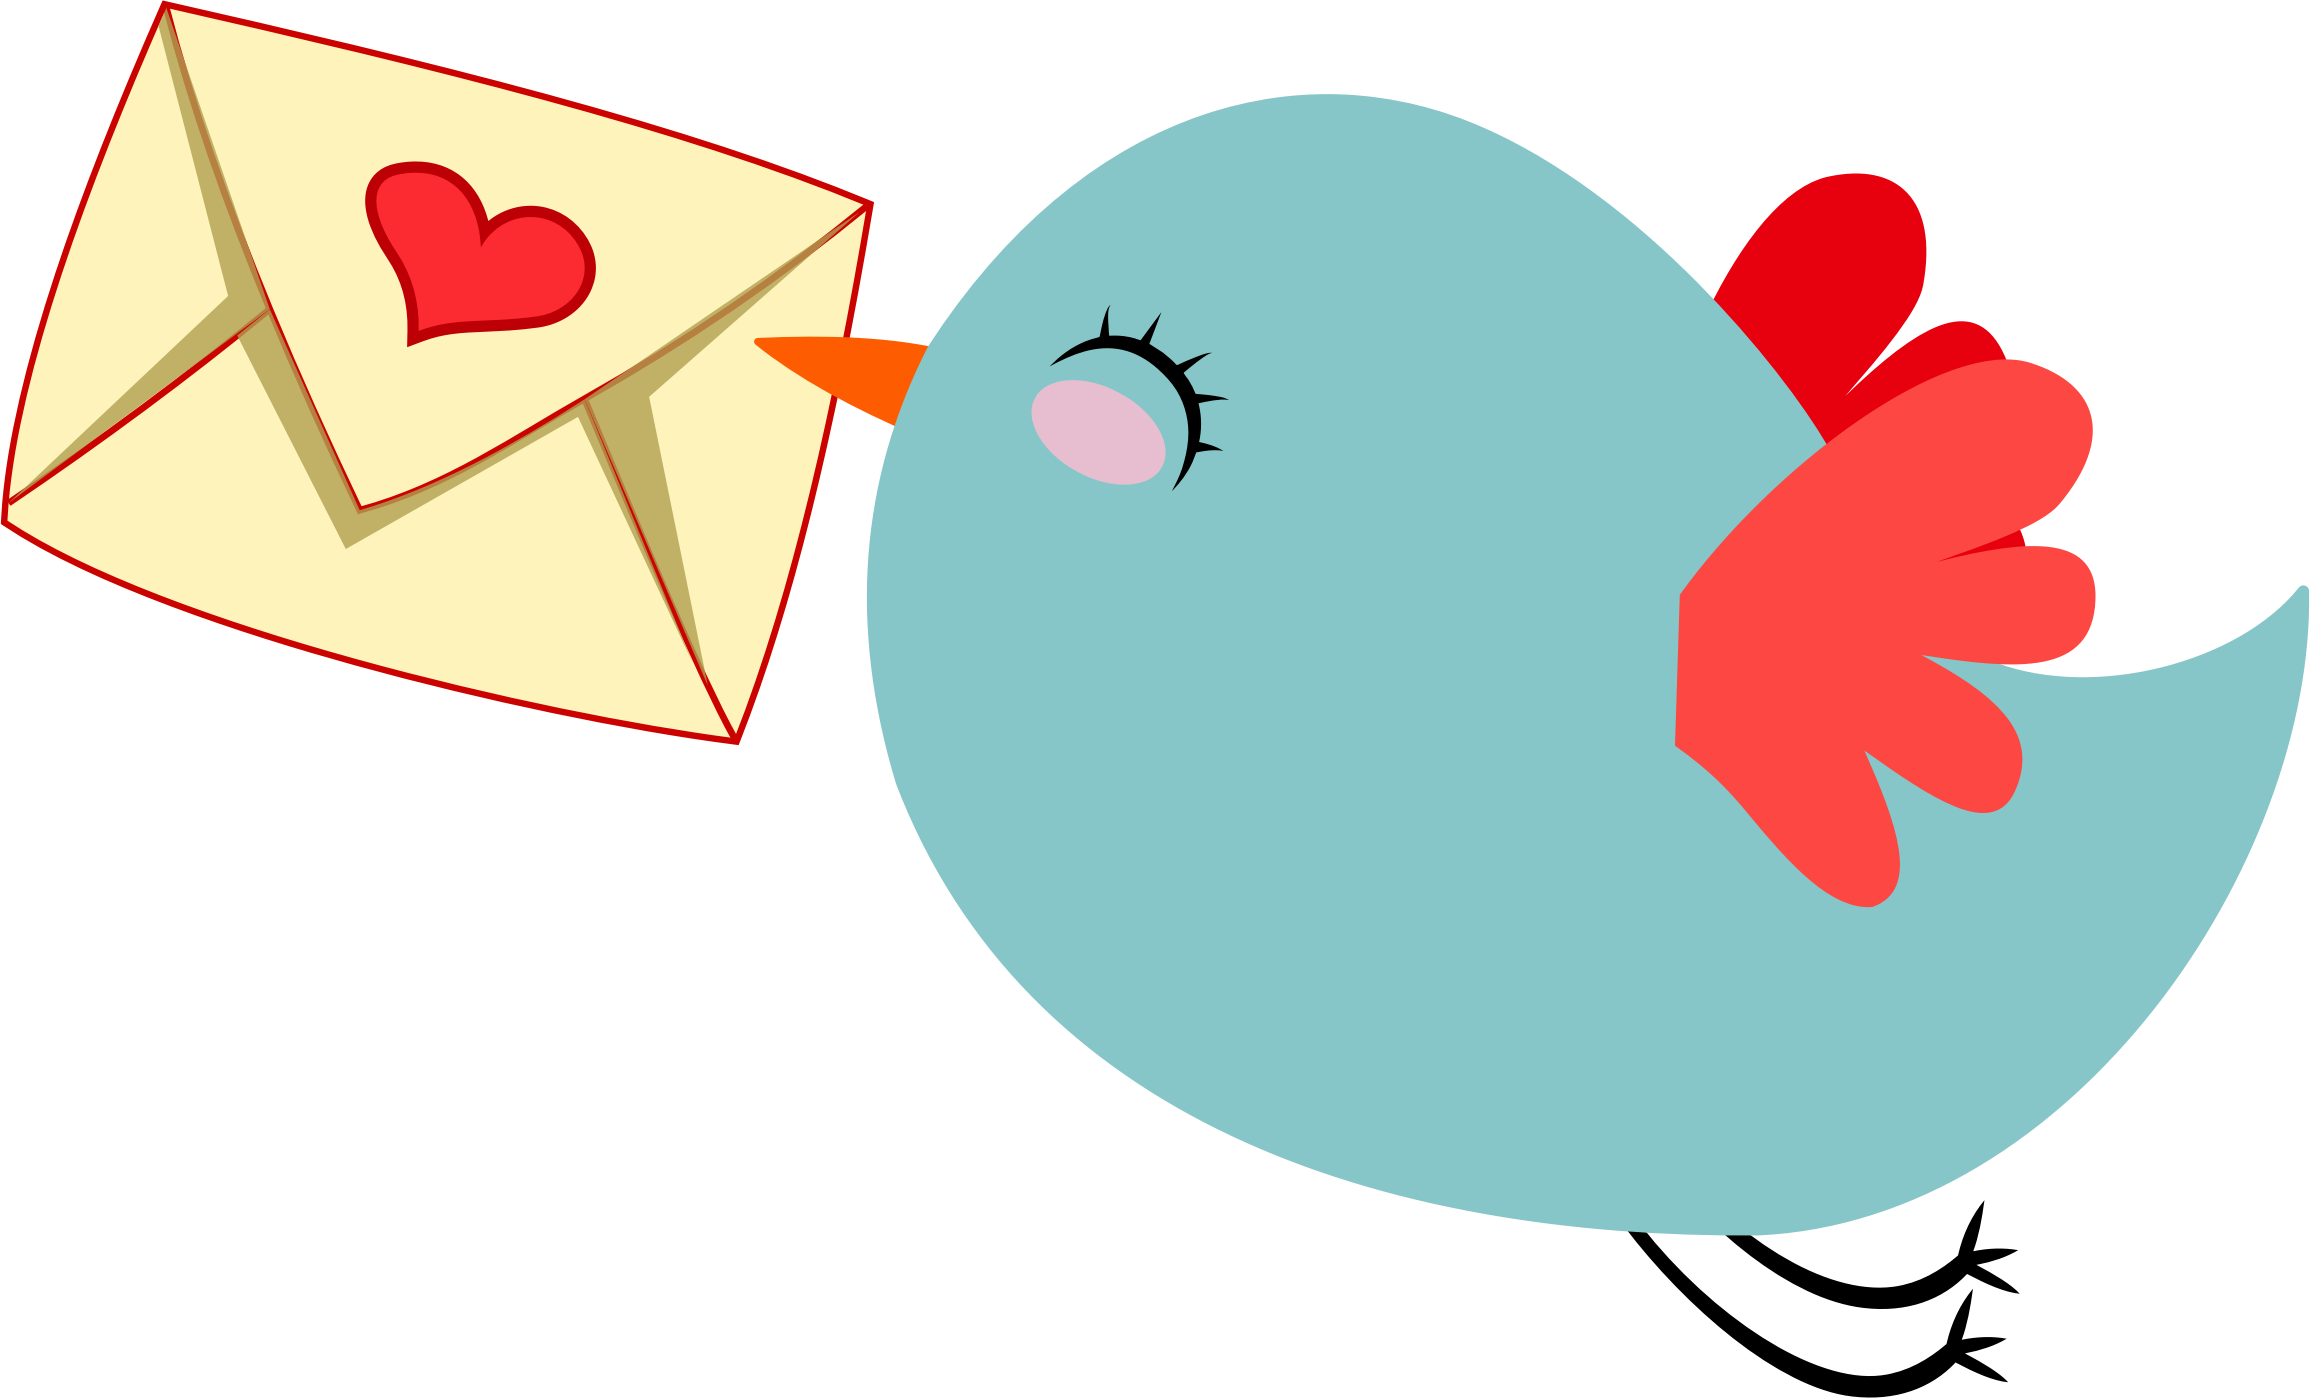 Mail clipart received. Cute carrier bird by